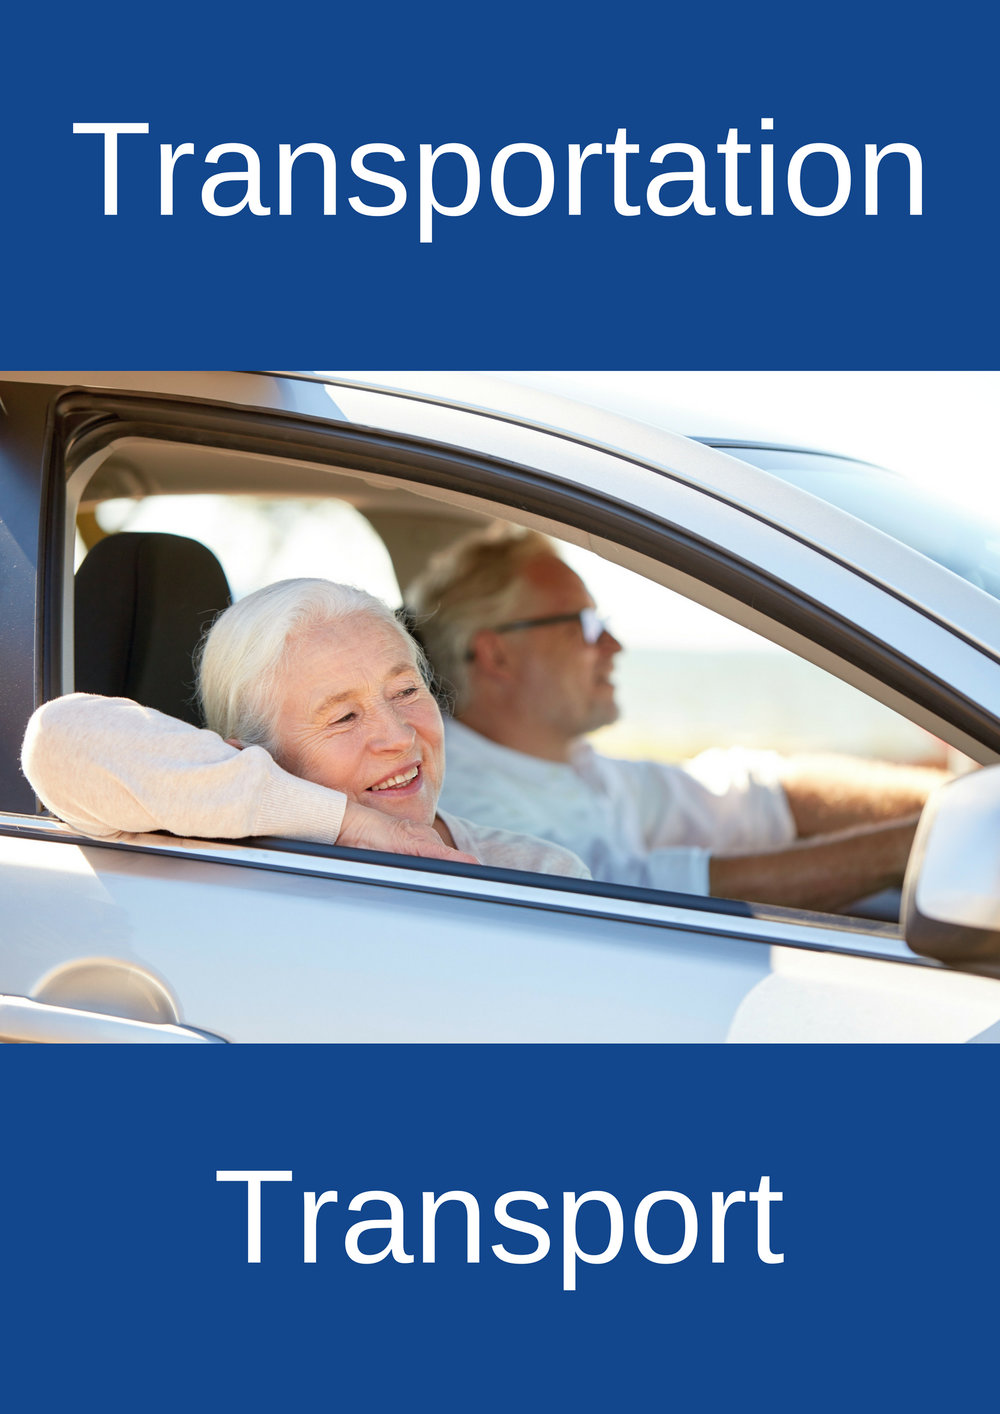 DISCOVER FREEDOM WITH OUR TRANSPORTATION SERVICES